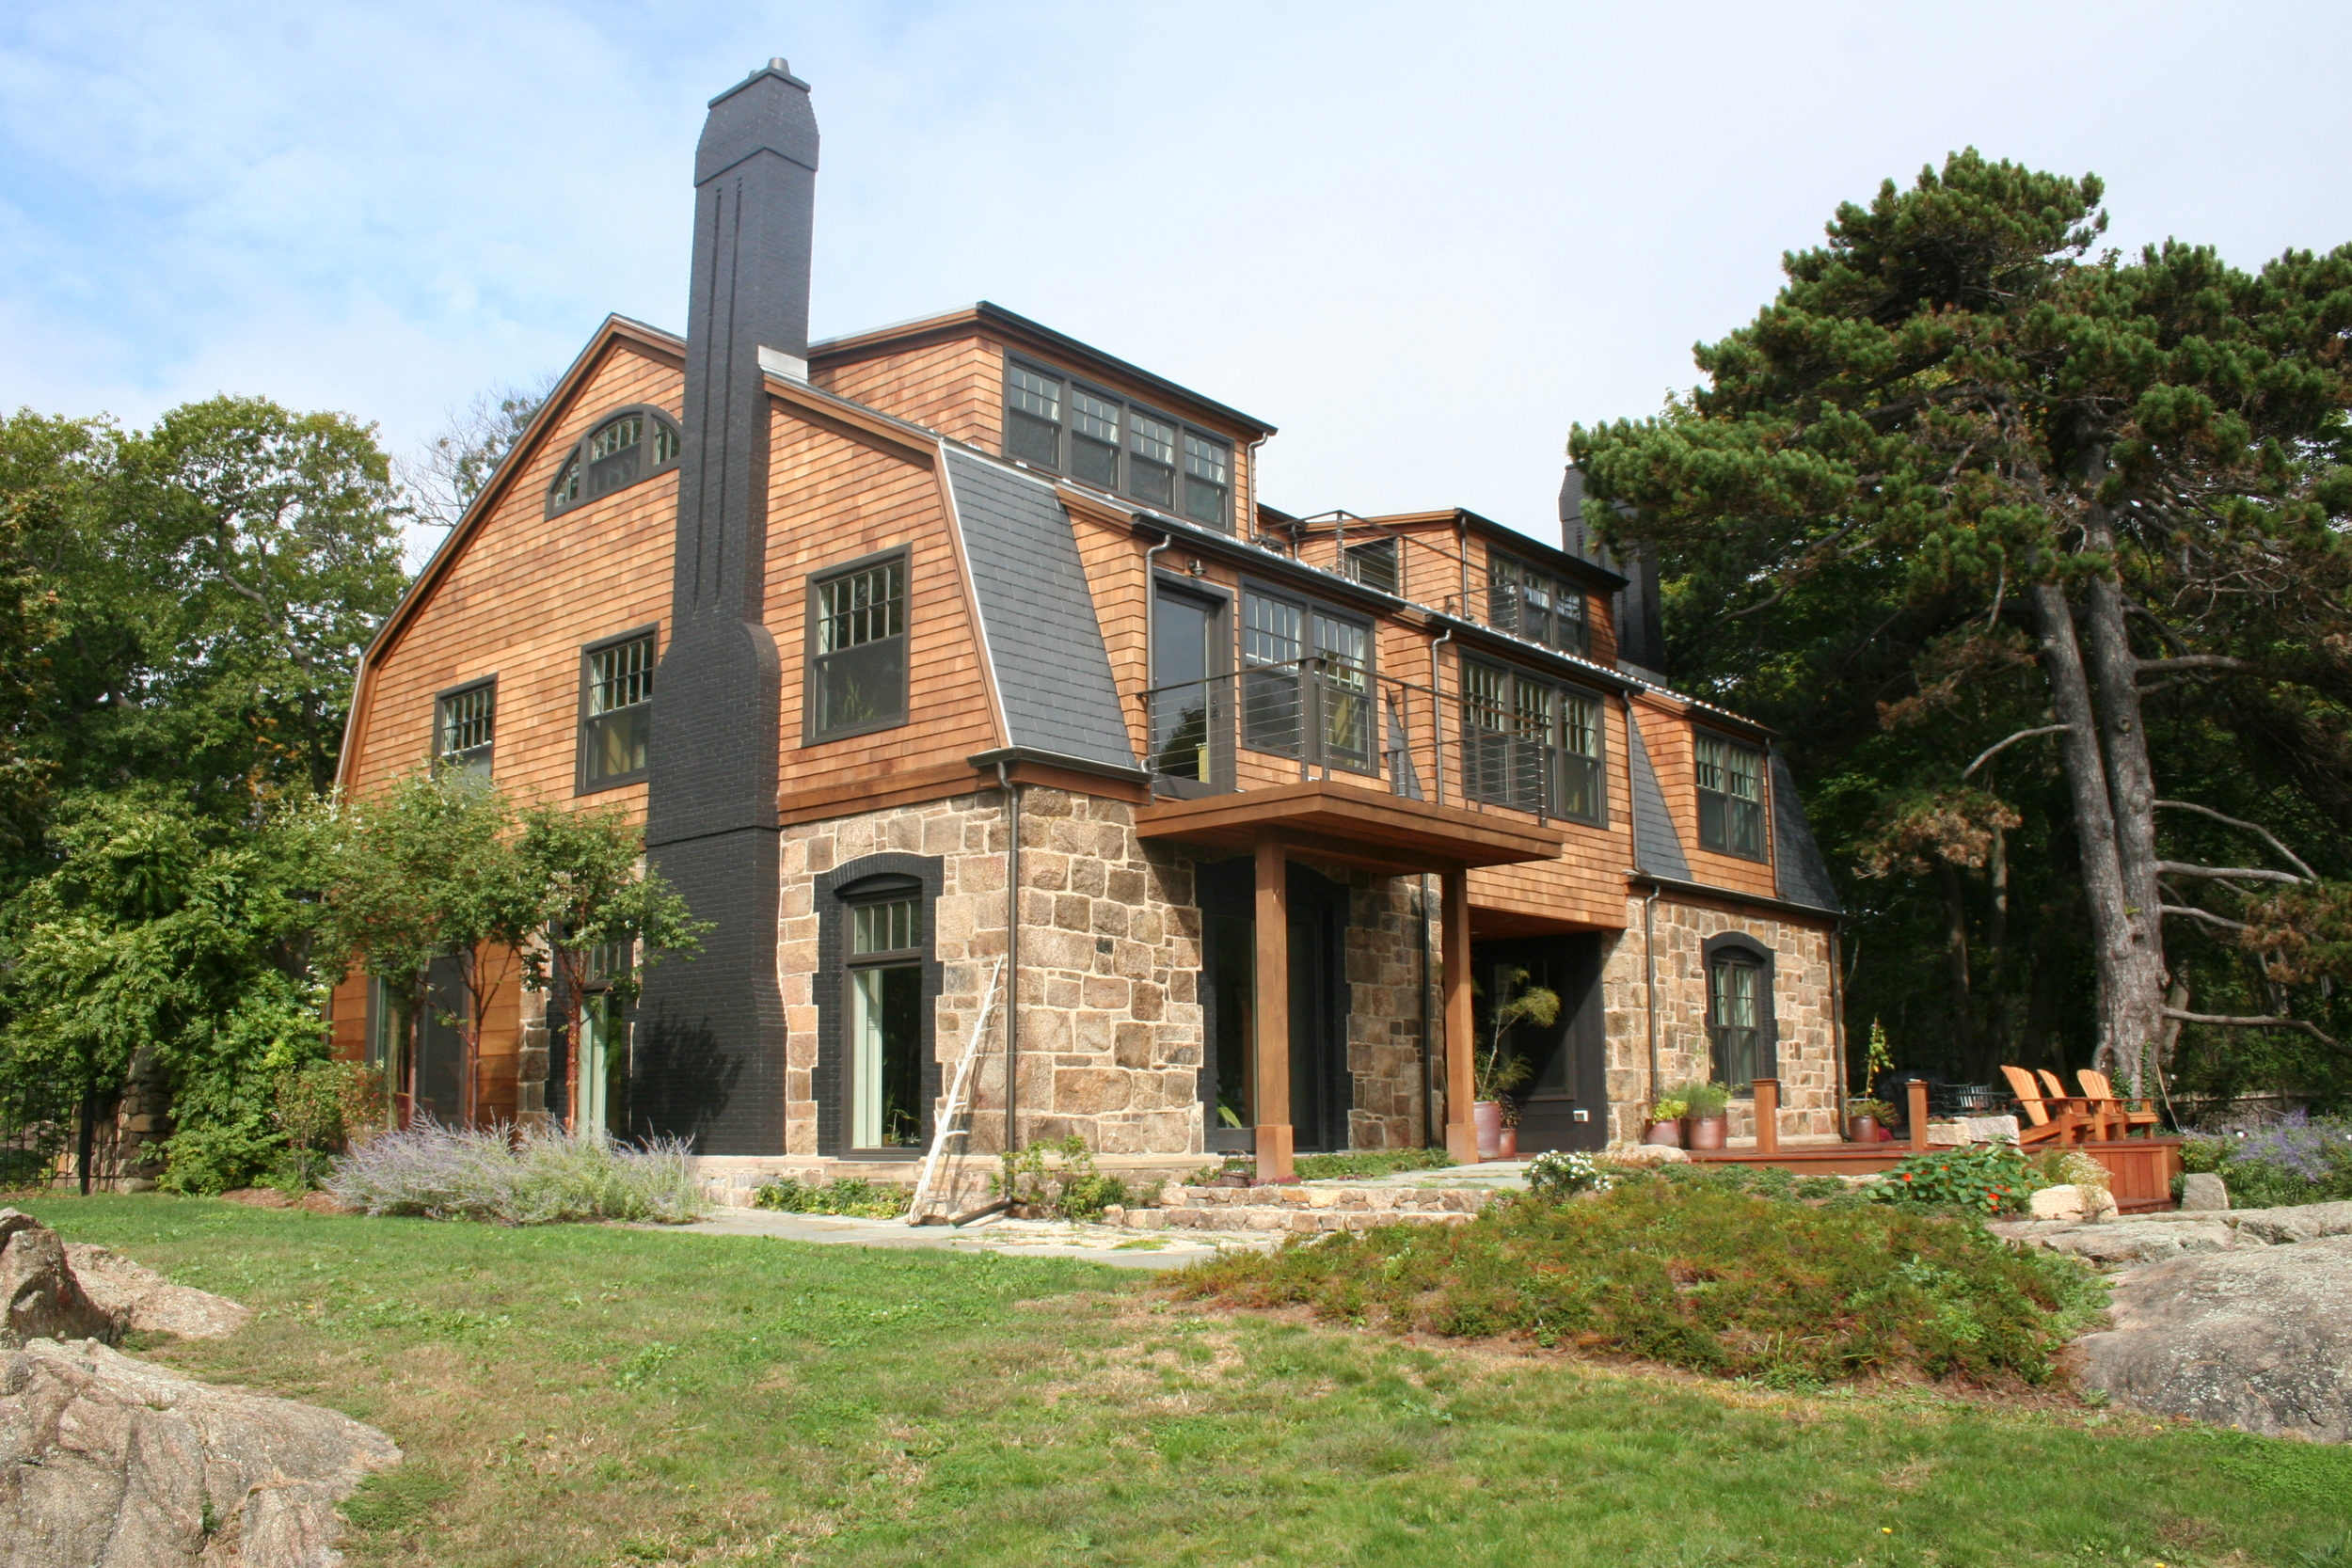 Manchester-by-the-Sea Renovation